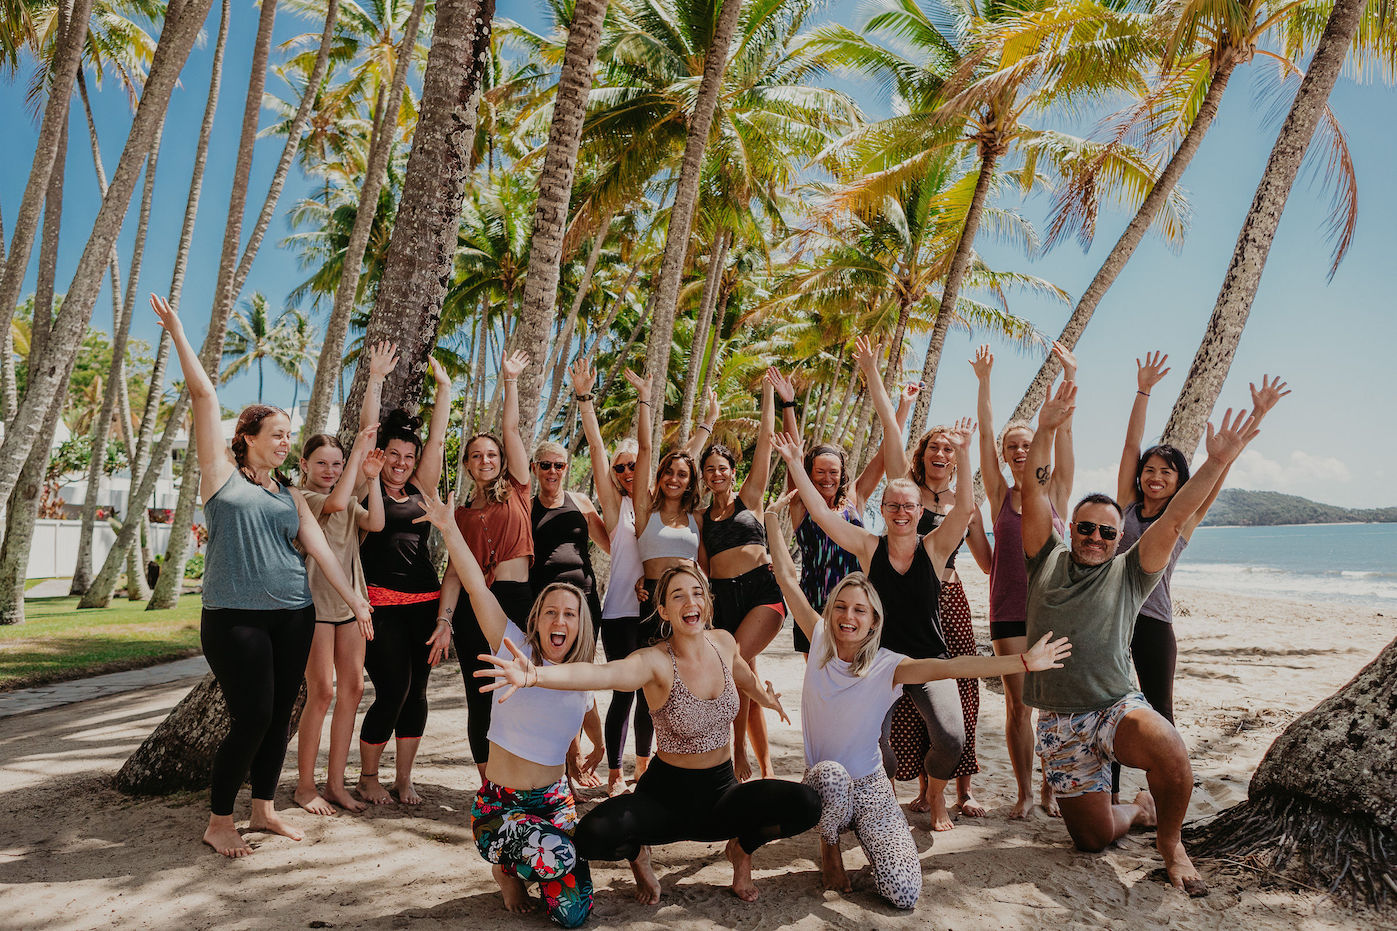 Yoga in Palm Cove